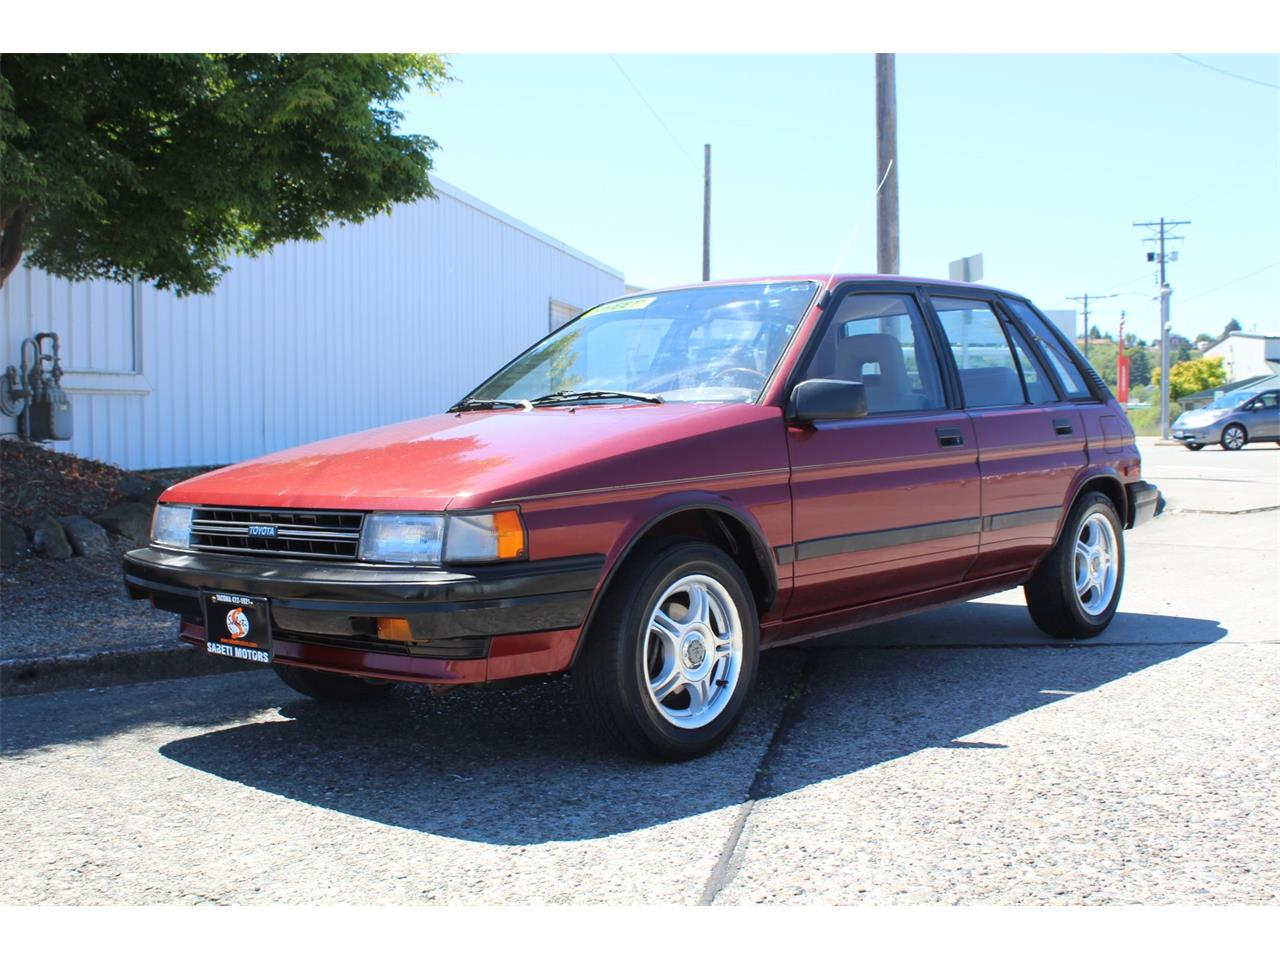 88 Toyota Tercel Hatchback The Amazing 1990 1988 For Sale Classiccars Com Cc 1006741